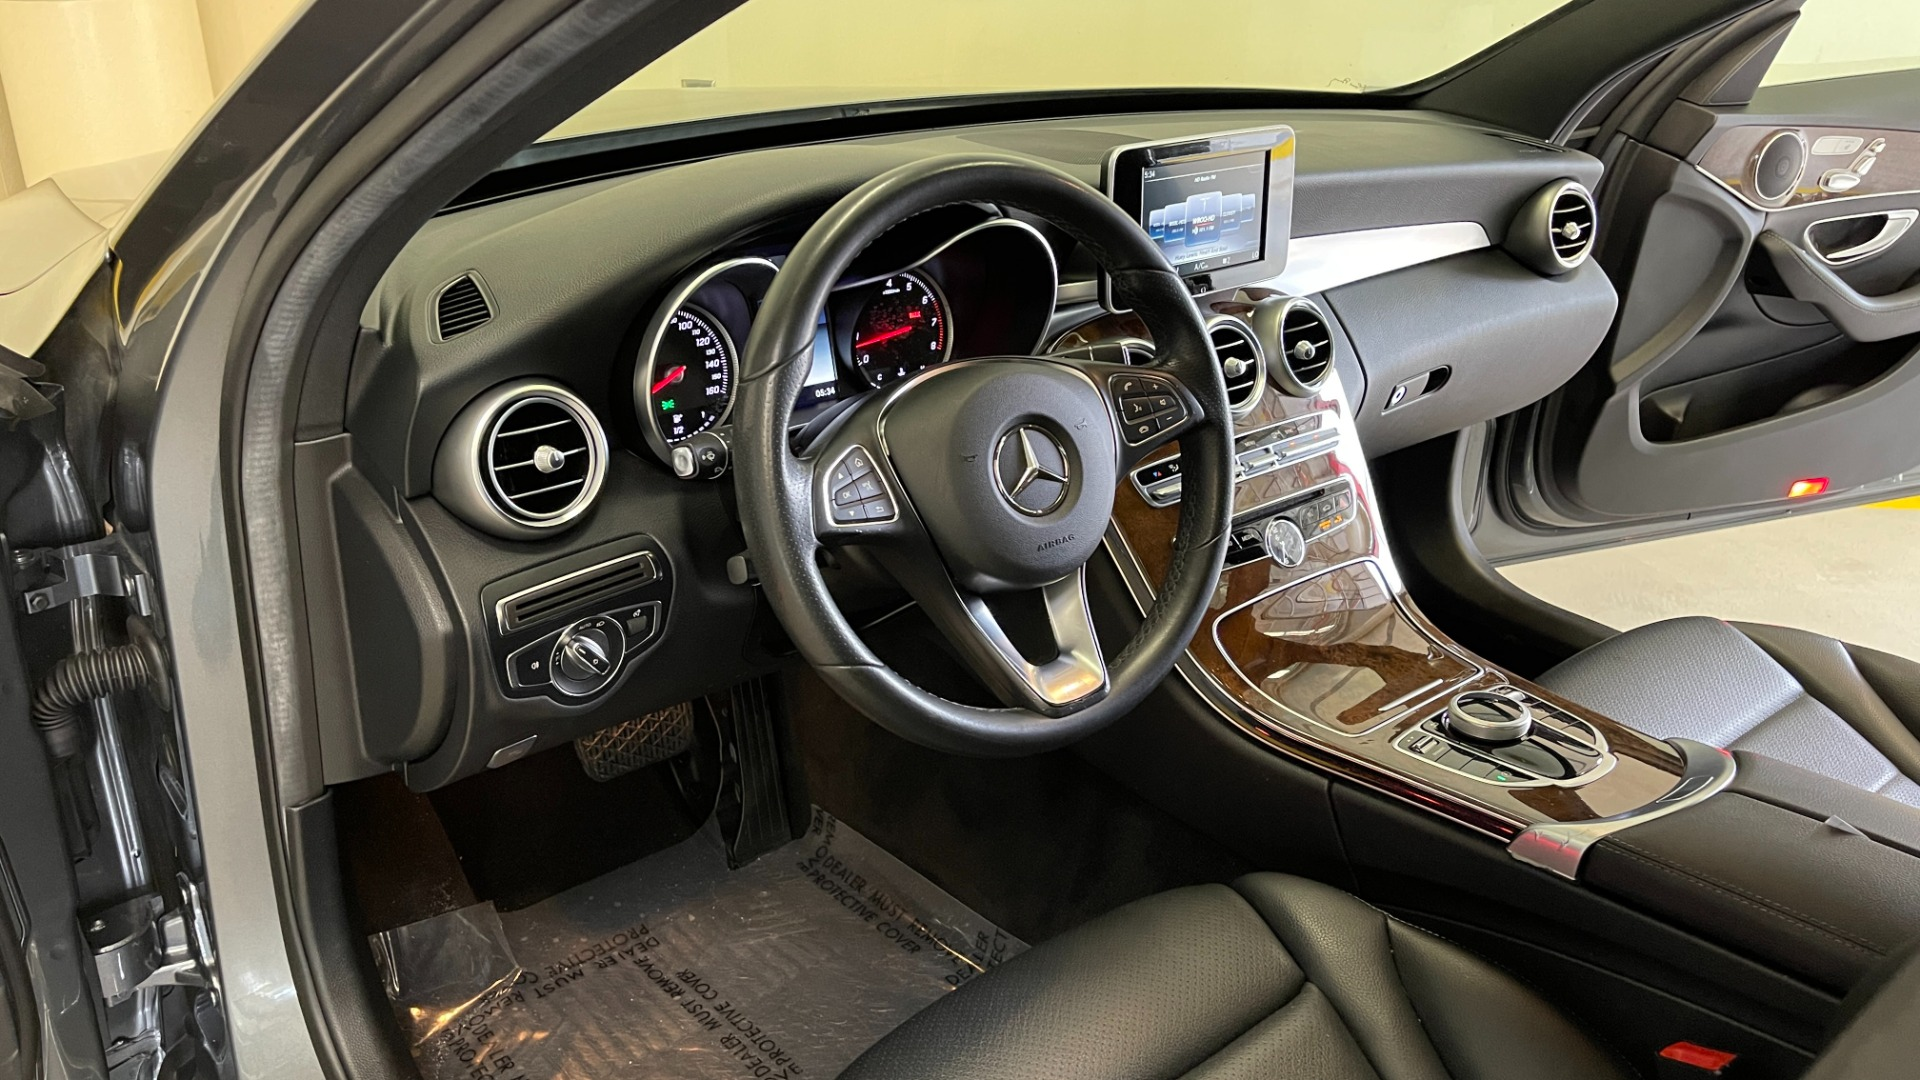 Used 2018 Mercedes-Benz C-CLASS C 300 PREMIUM / SUNROOF / APPLE CARPLAY / HTD STS / REARVIEW for sale $31,795 at Formula Imports in Charlotte NC 28227 25